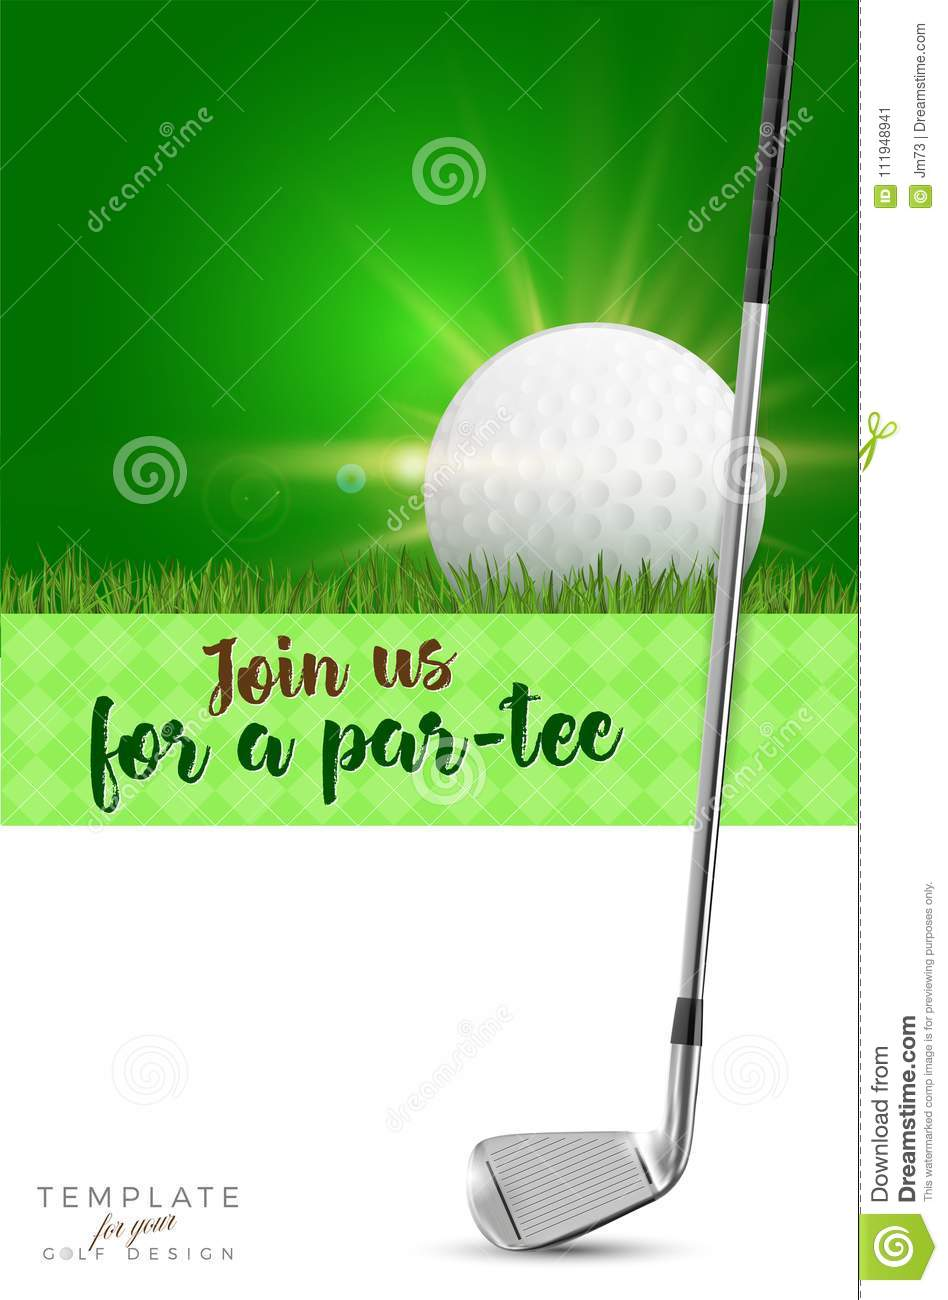 Template for your golf design with copy space